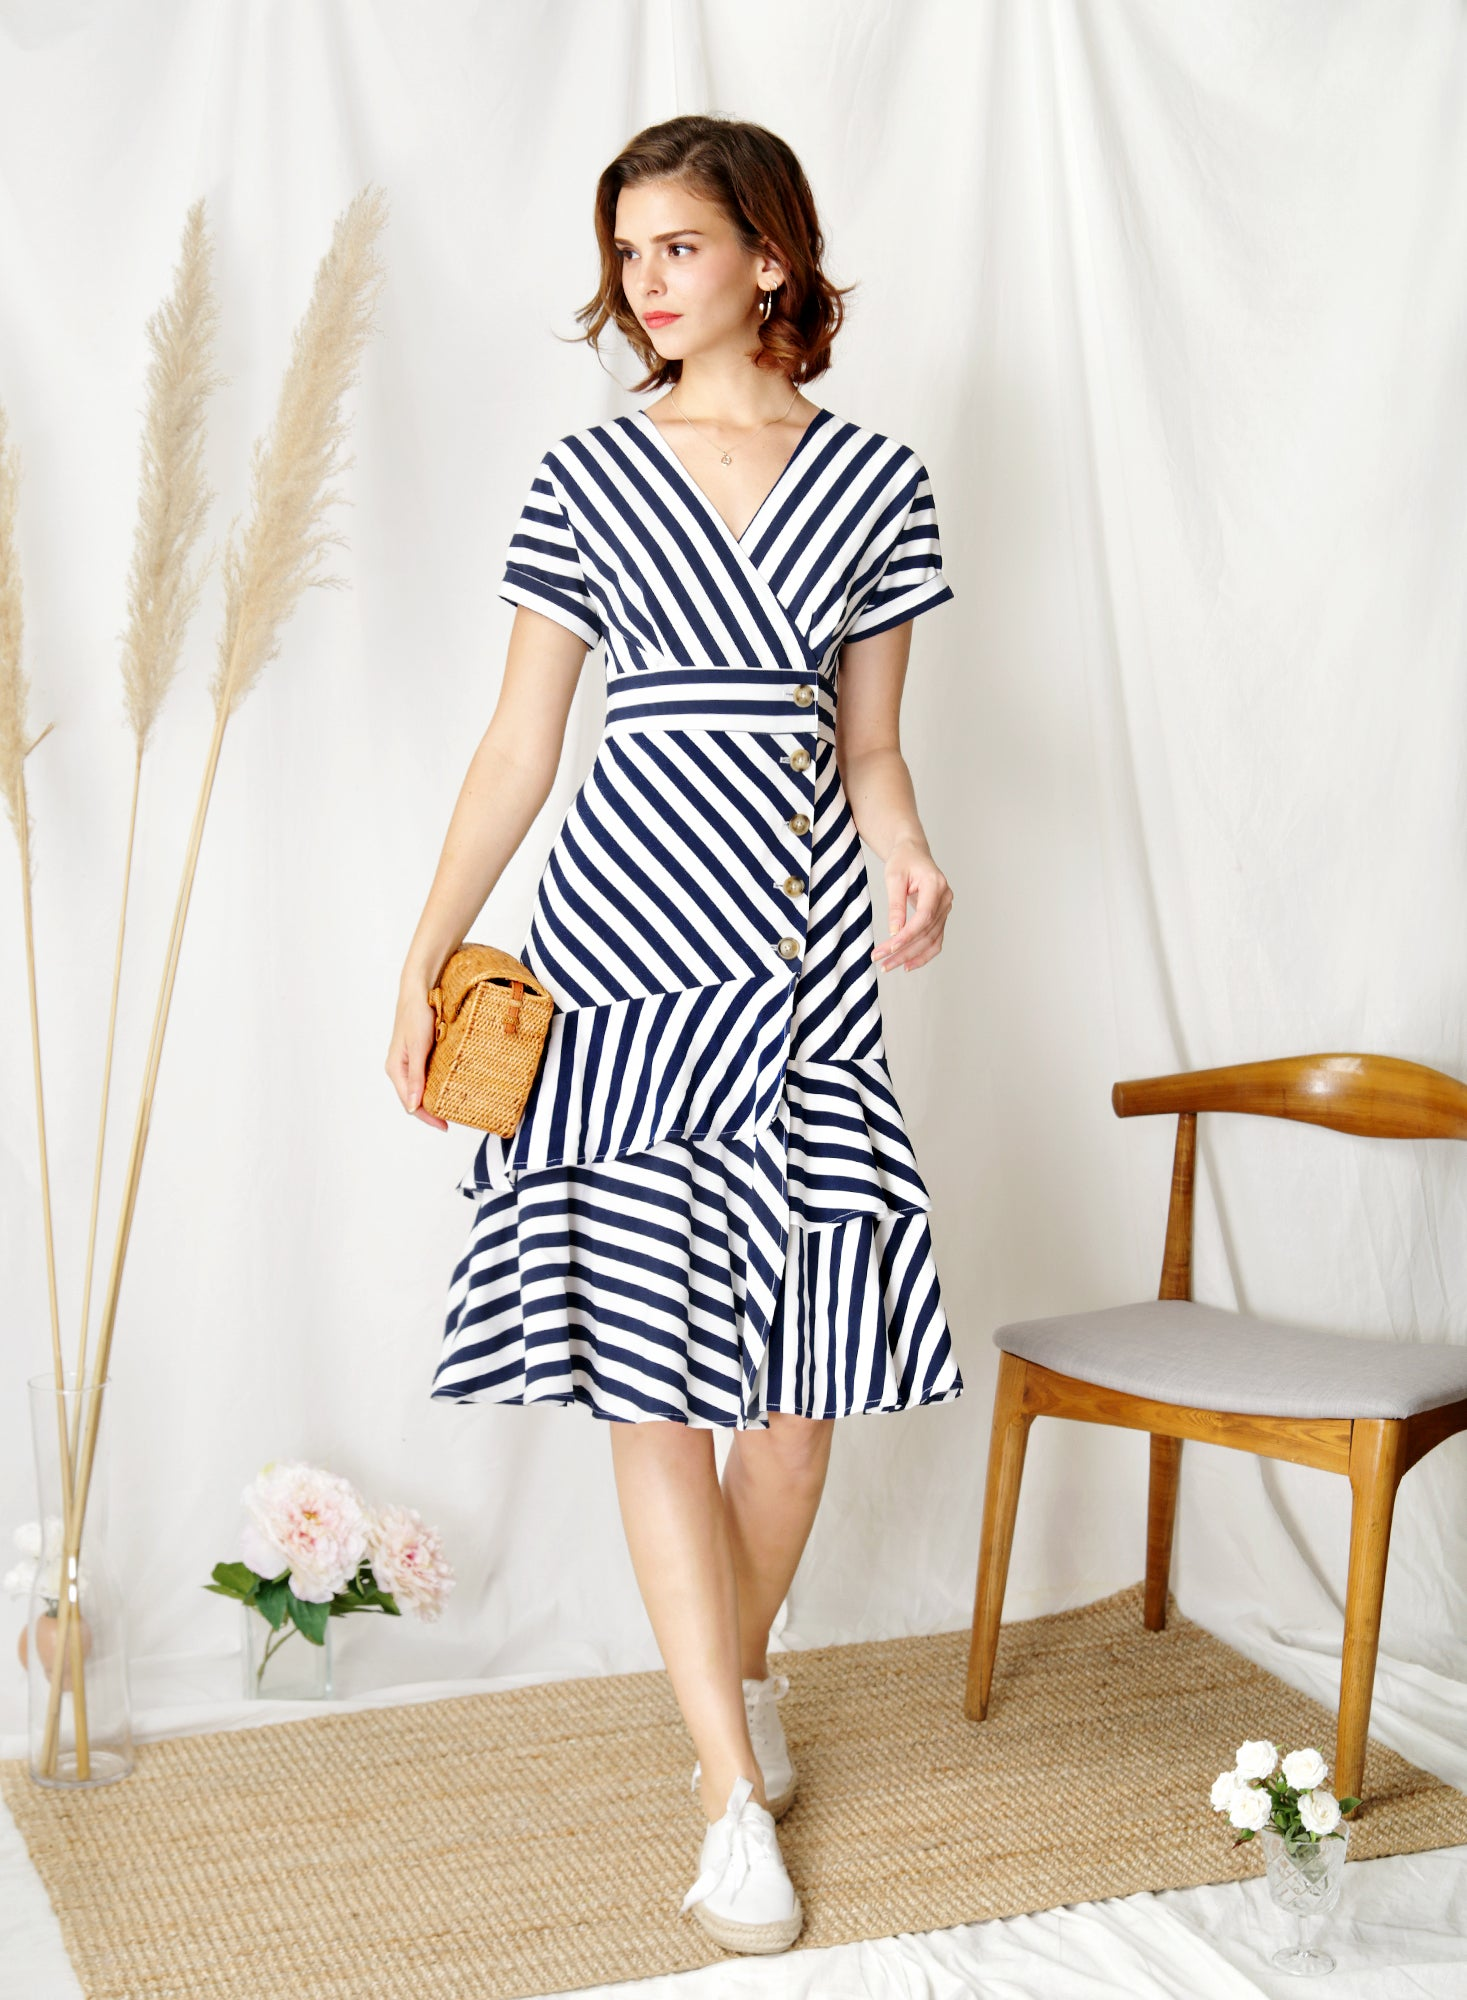 Harbour Tiered Hem Midi Dress (Navy Stripes) at $ 45.00 only sold at And Well Dressed Online Fashion Store Singapore